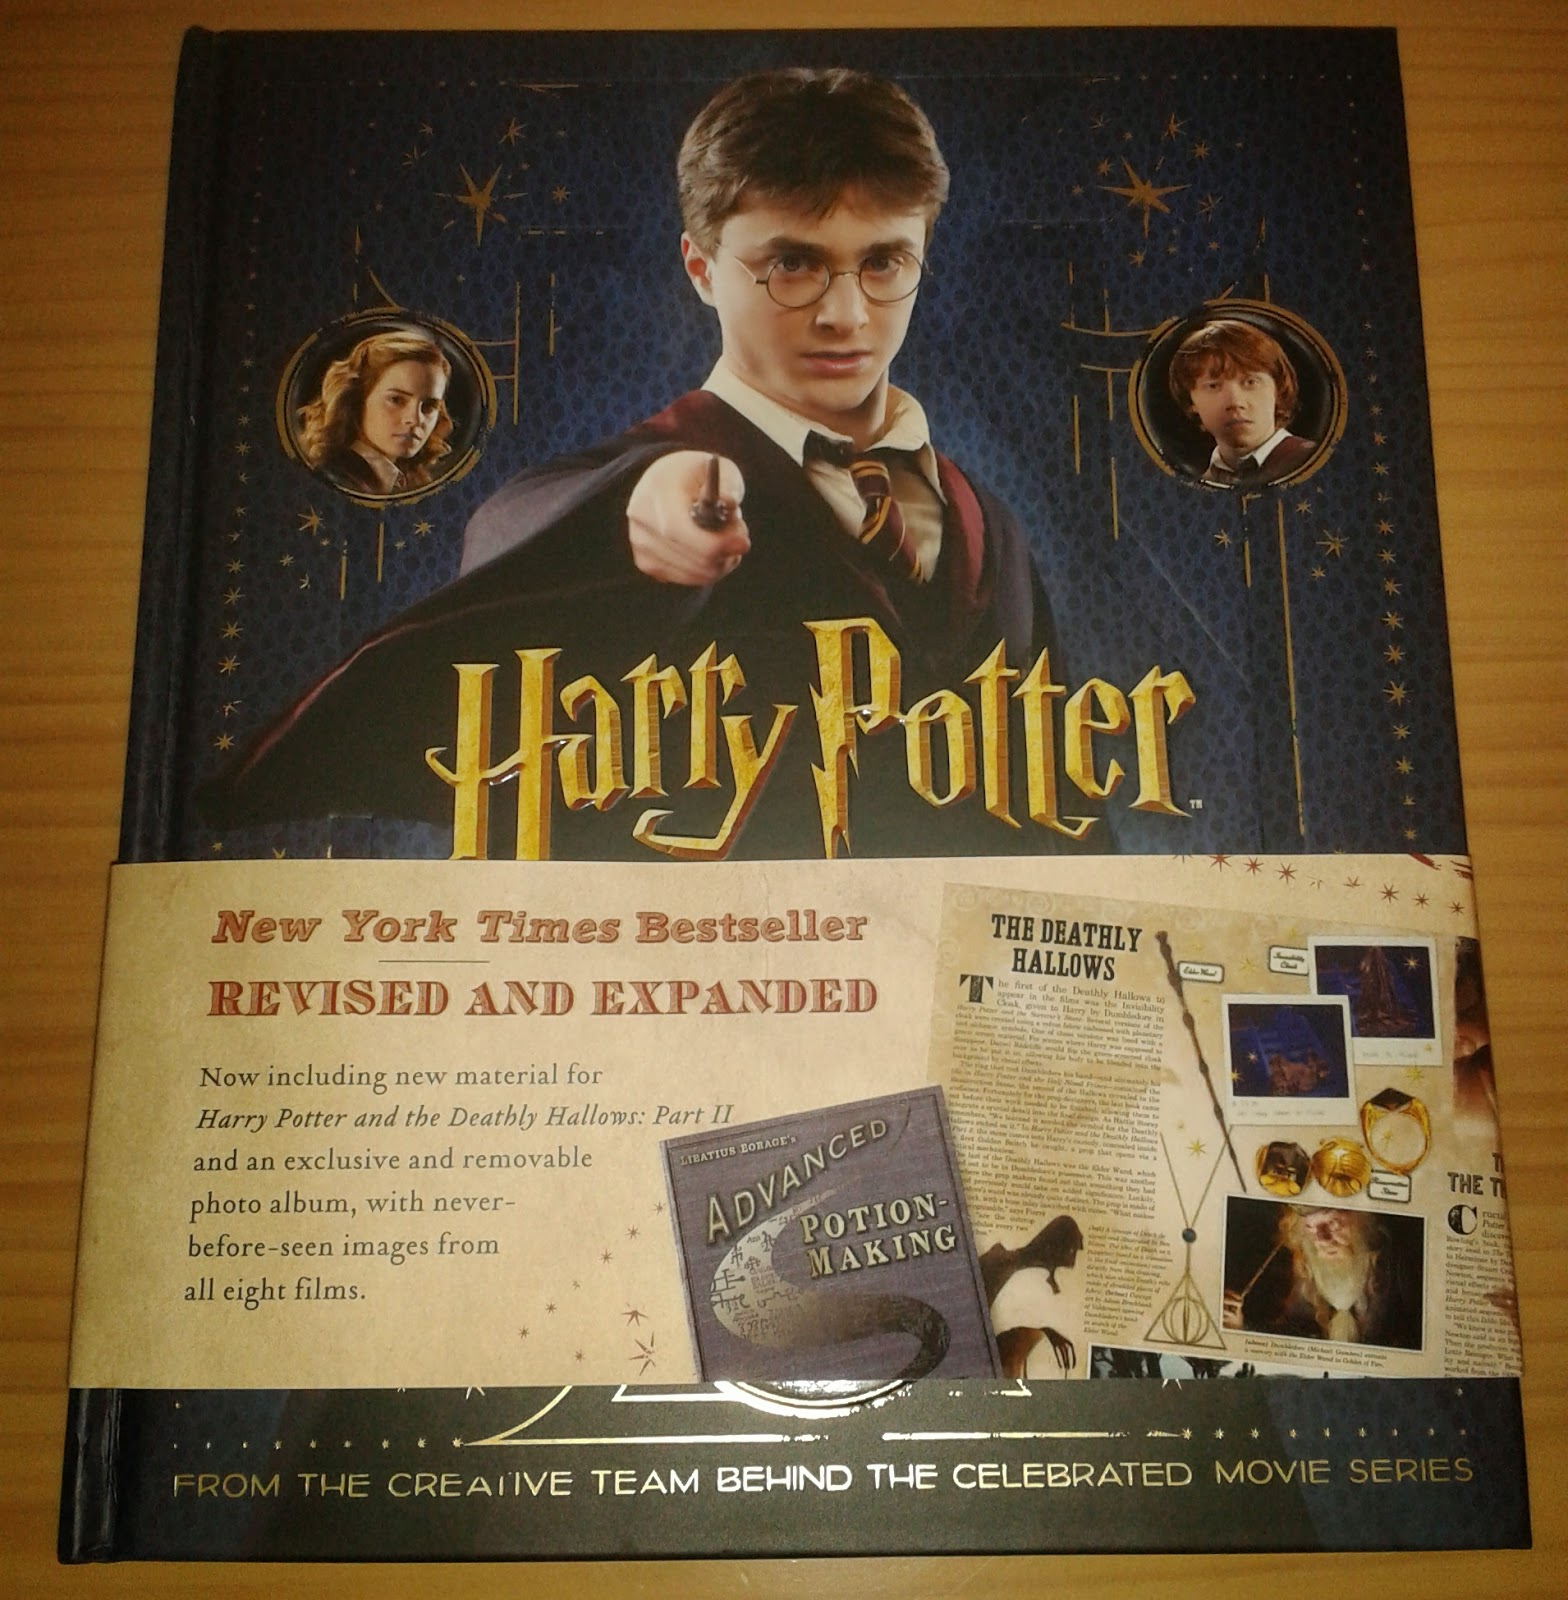 Pack Todos Los Libros De Harry Potter Descubridora De Cuentos Unboxing Harry Potter Film